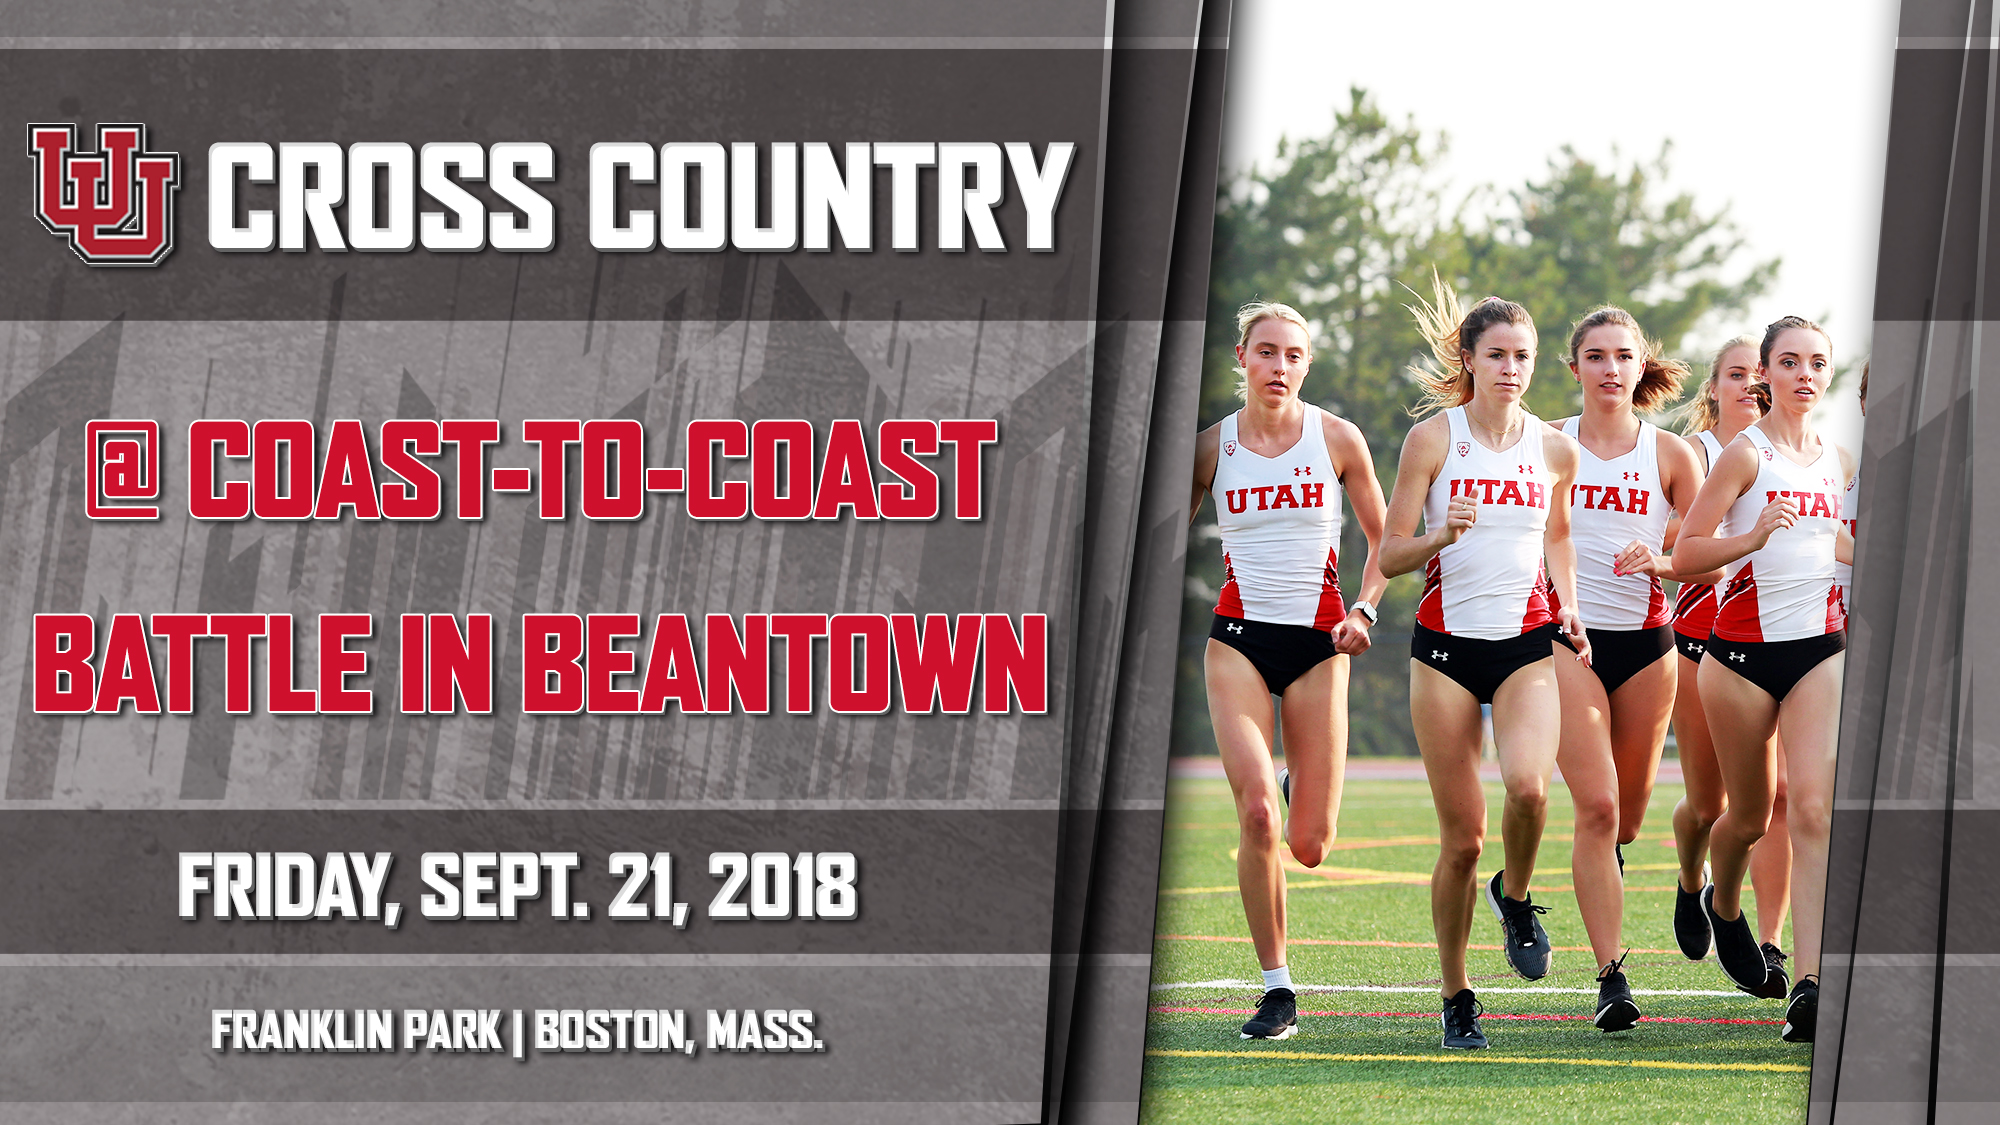 XC Meet Week 3 - at Battle in Beantown